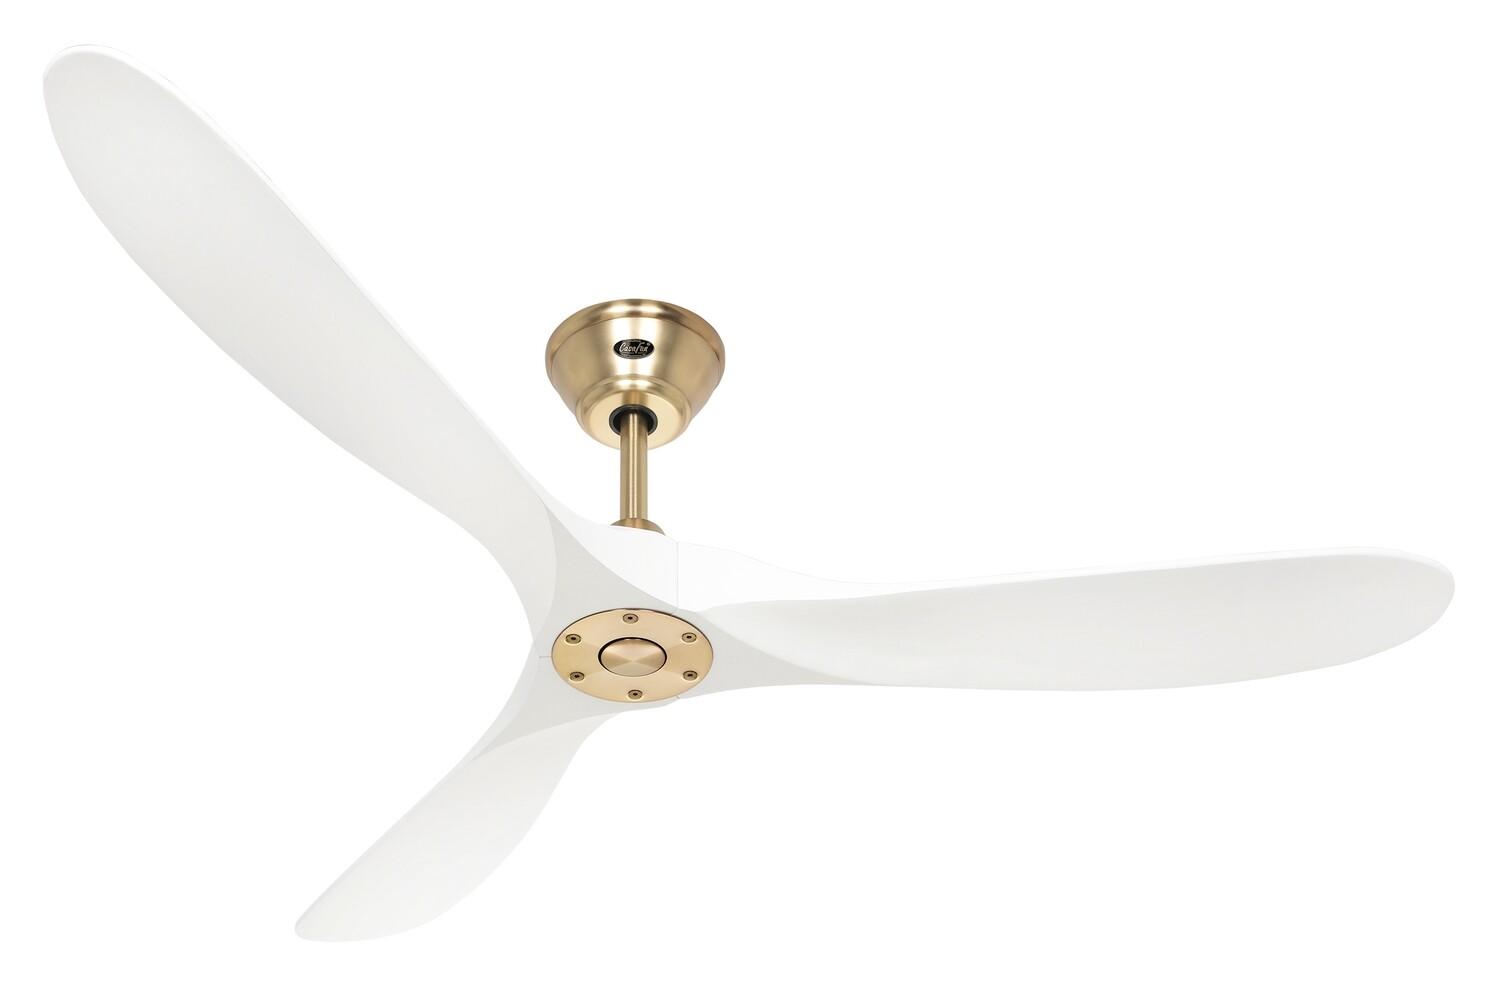 Eco Genuino 152 MG-MW energy saving ceiling fan by CASAFAN Ø152 with remote control included